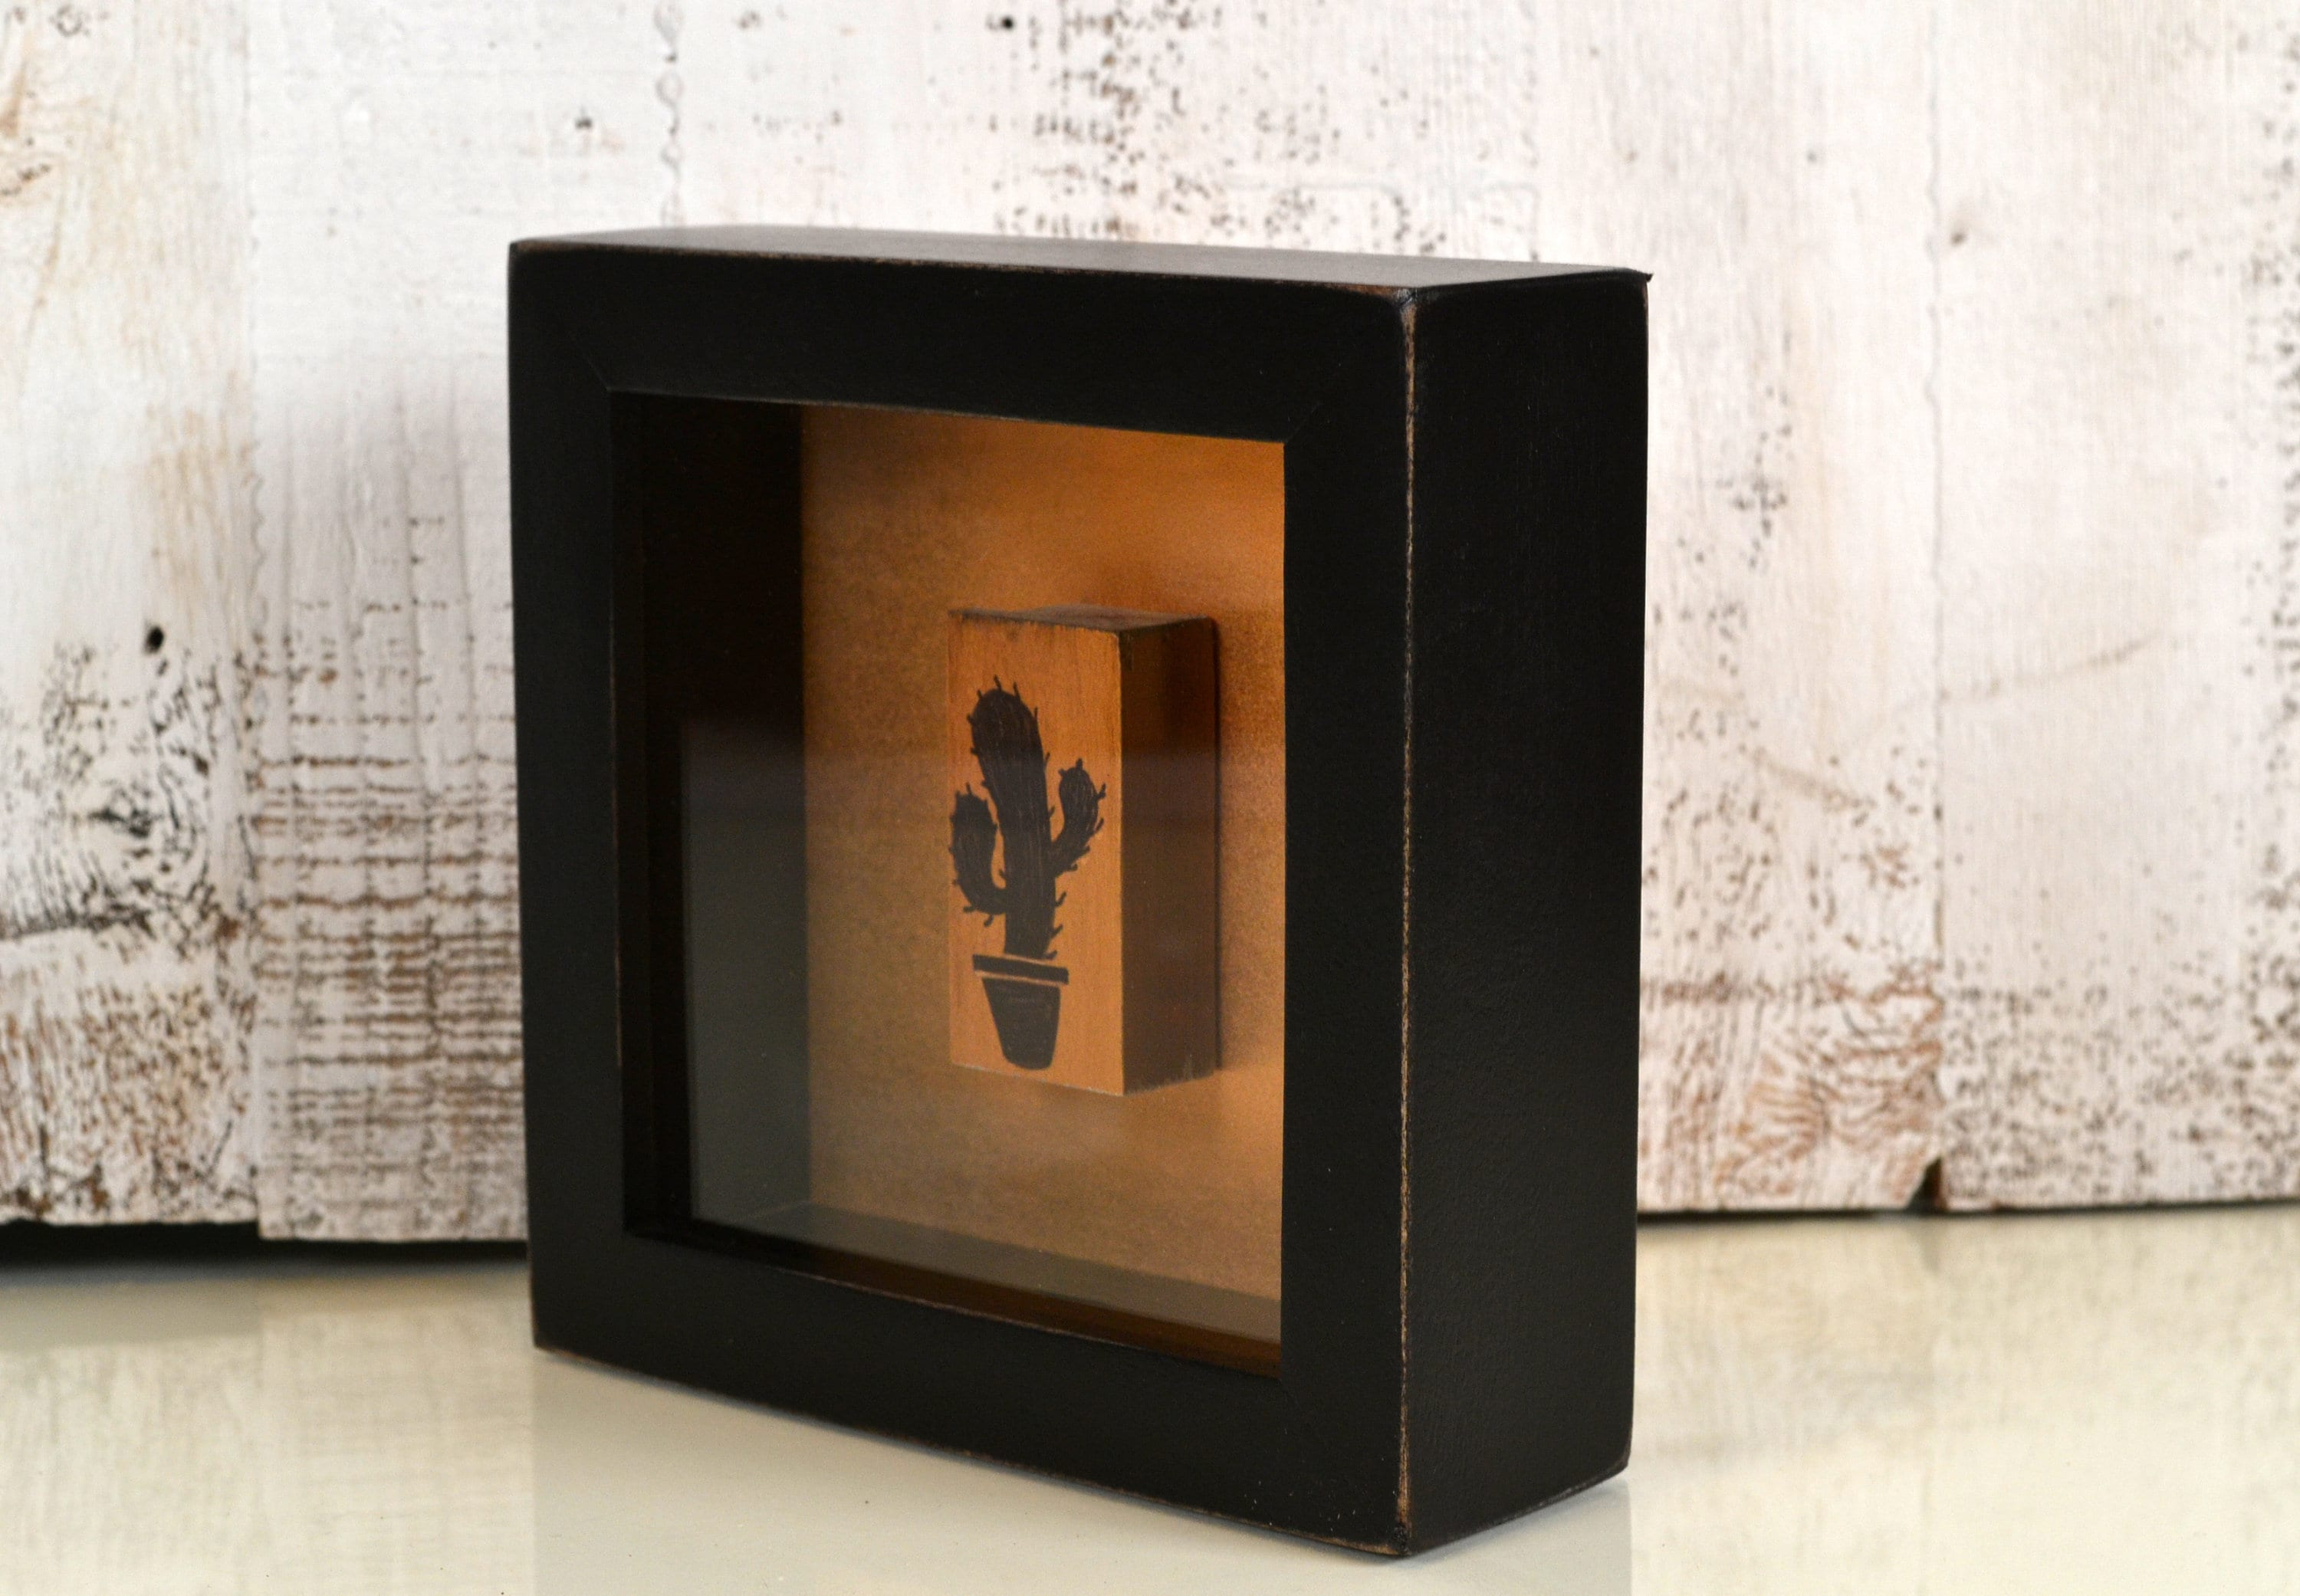 Handmade Small Square Shadow Box Frame Holds Up To 6 X 6 X 15